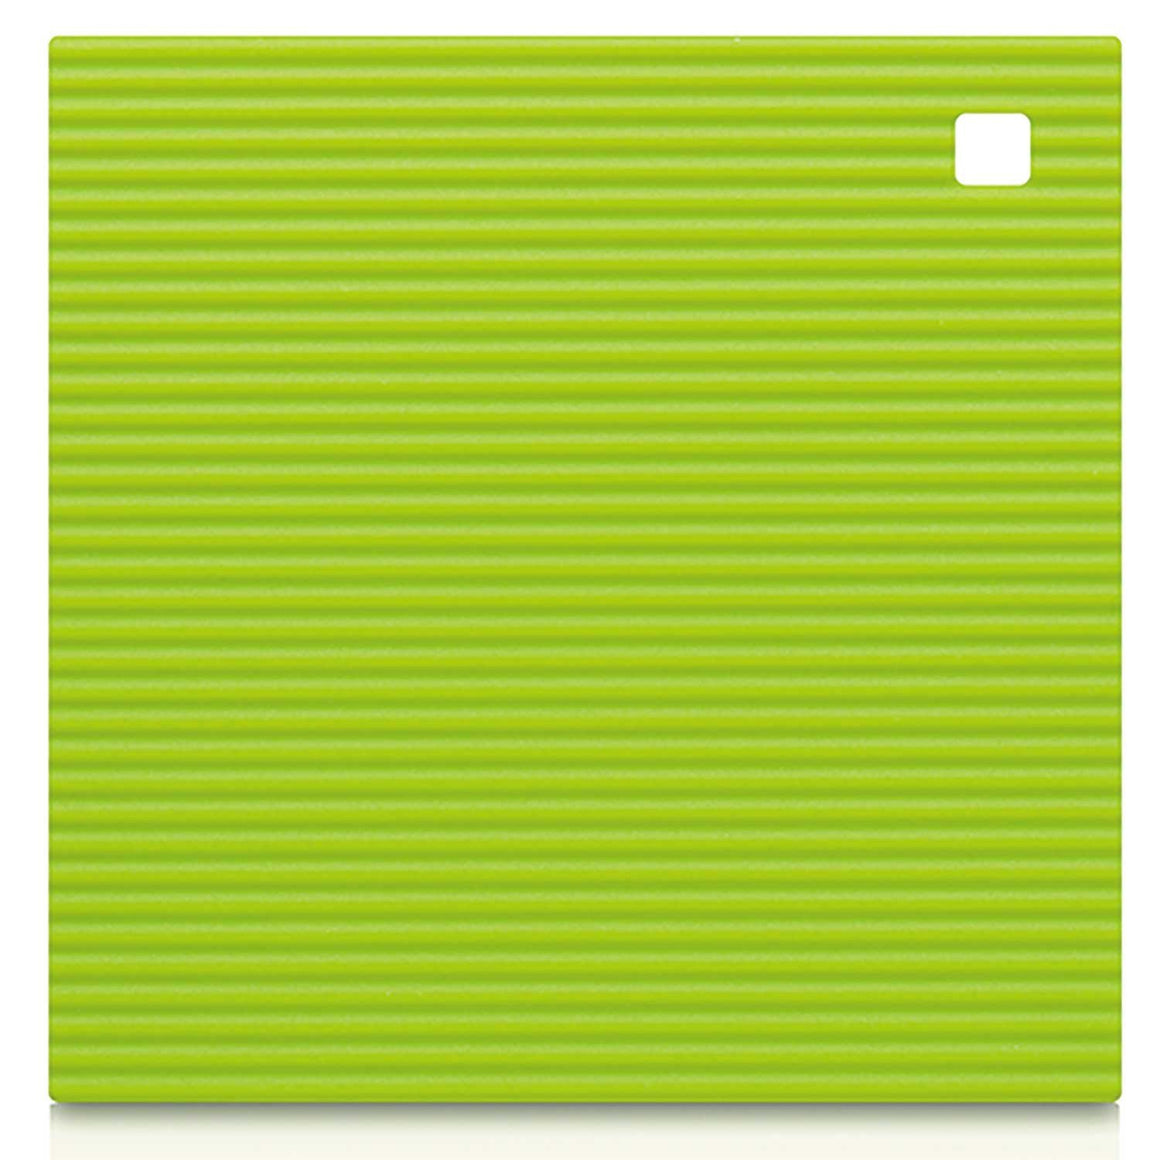 Zeal Originals Silicone Hot Mat Large 22cm Lime - stuff-n-things